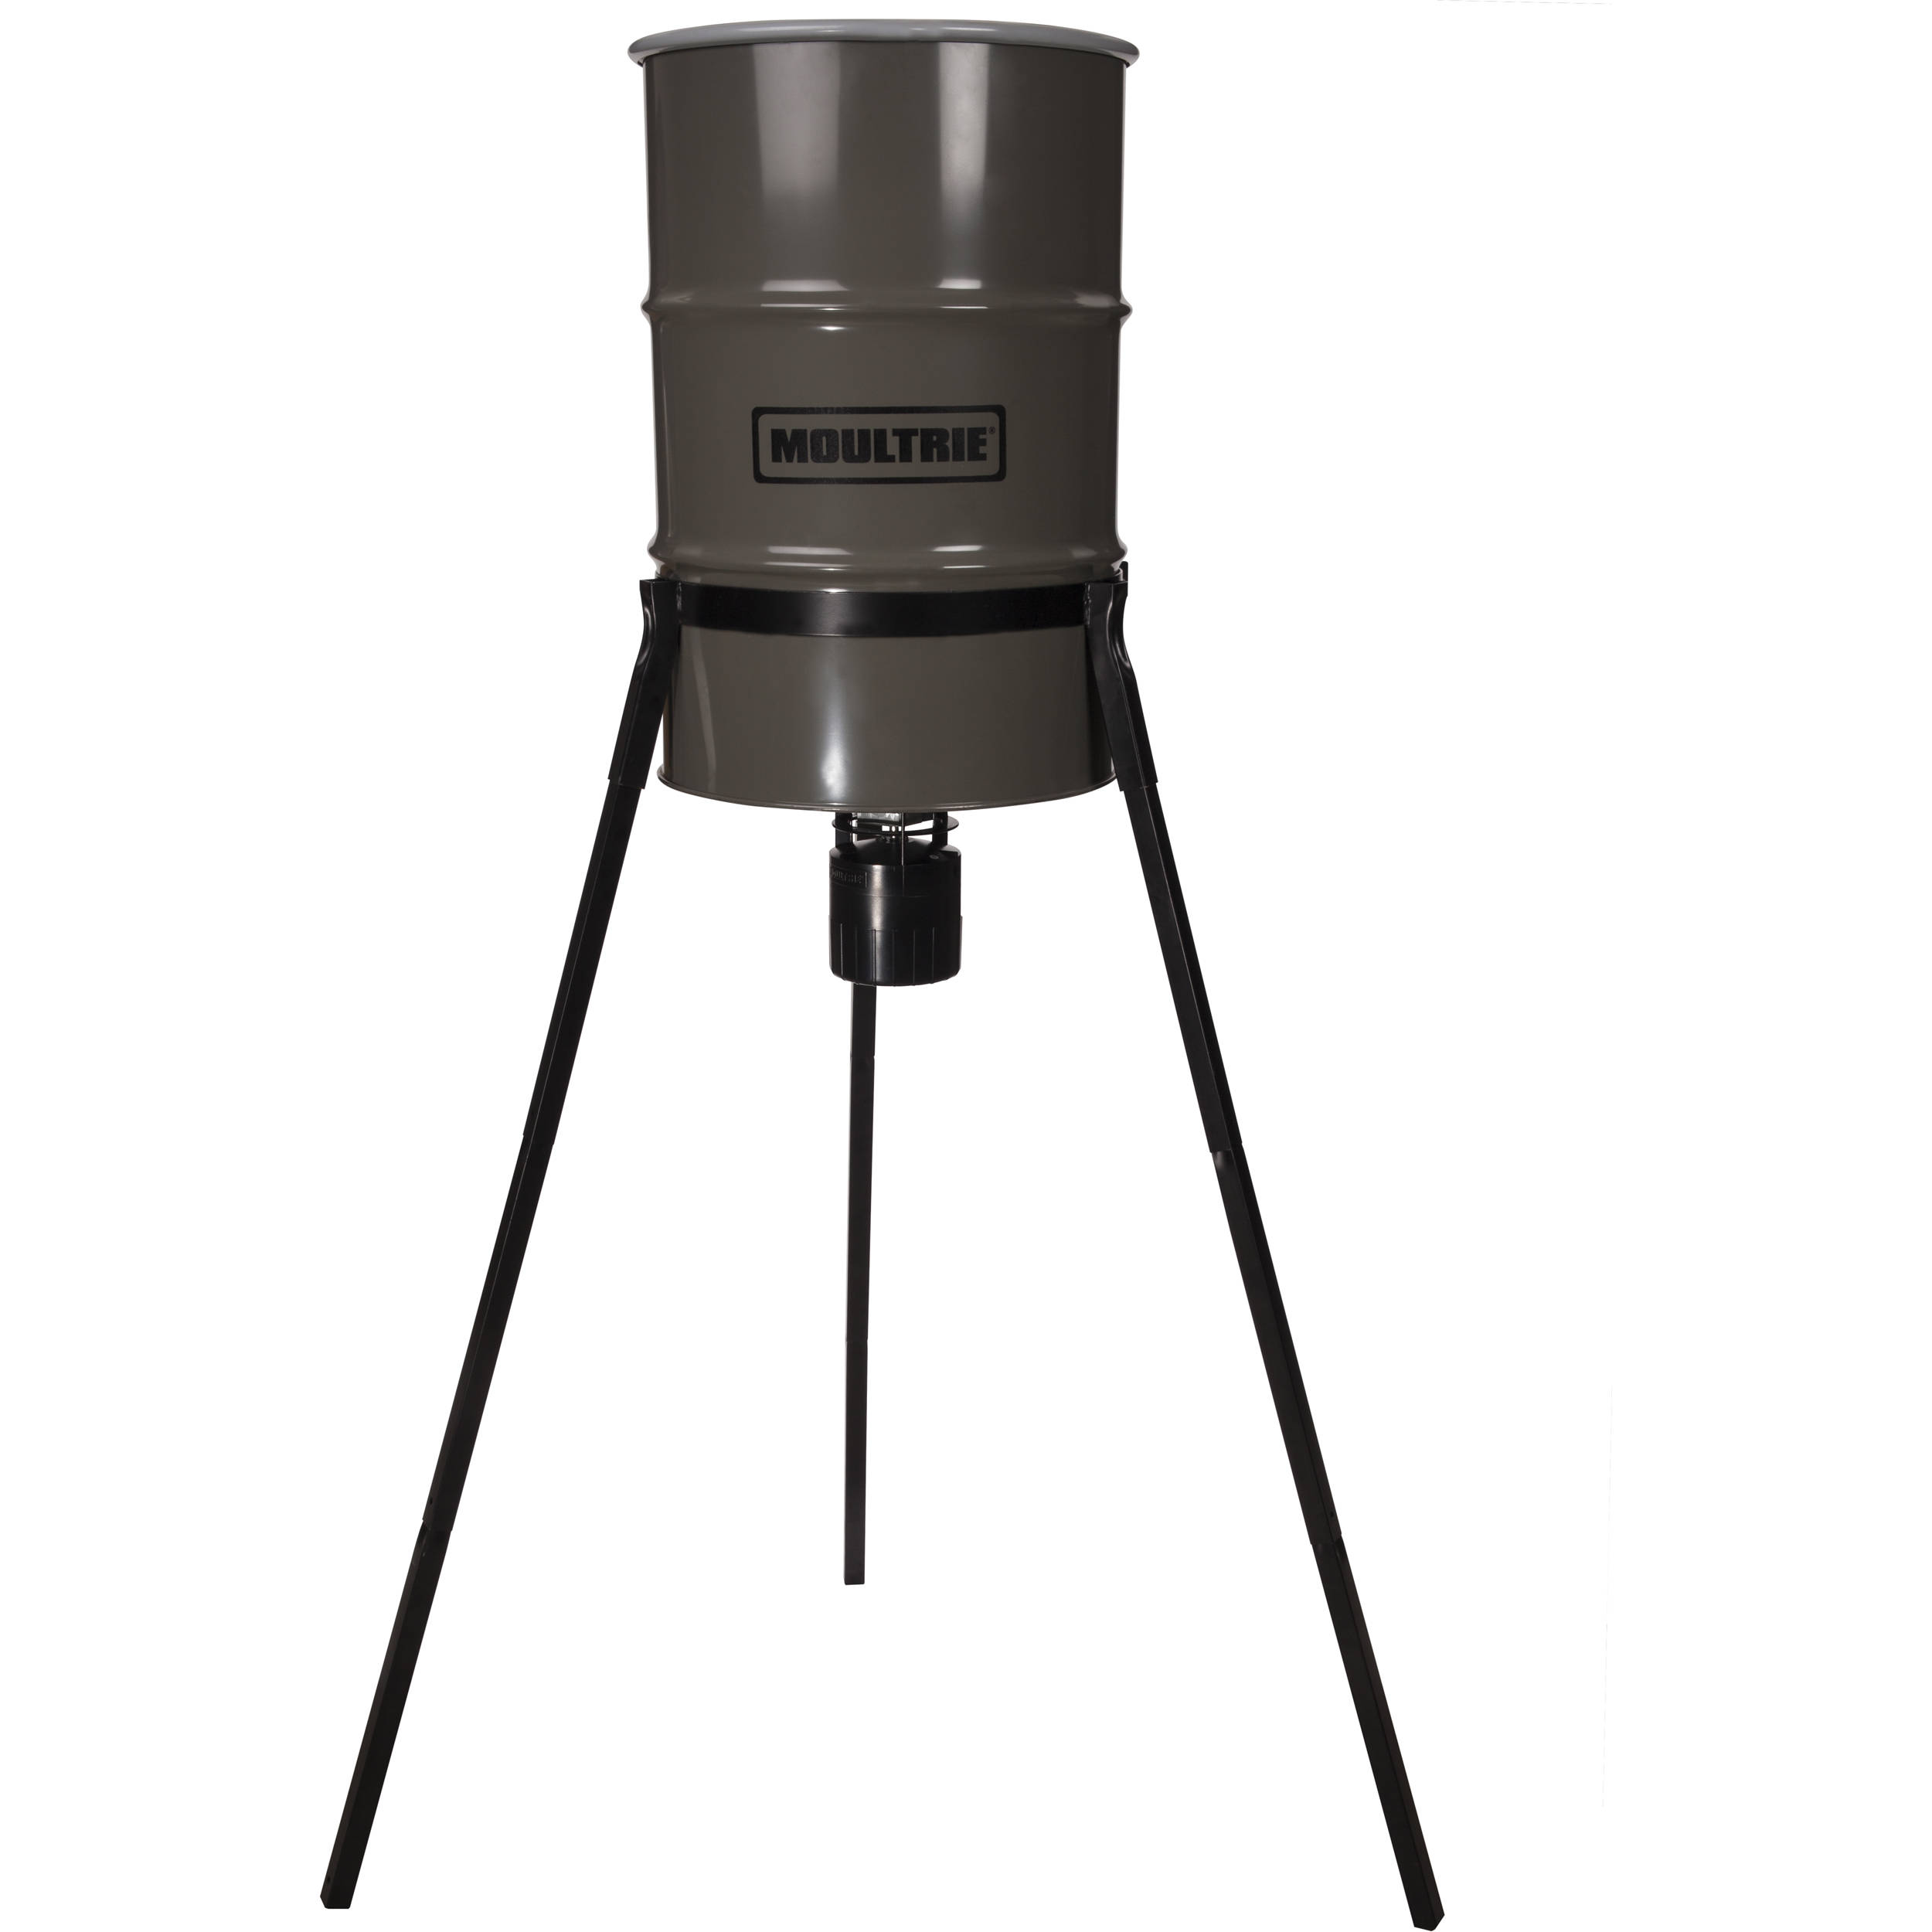 moultrie product reg wildlife deer hunter pro tripod feeders gallons feeder c mfg american